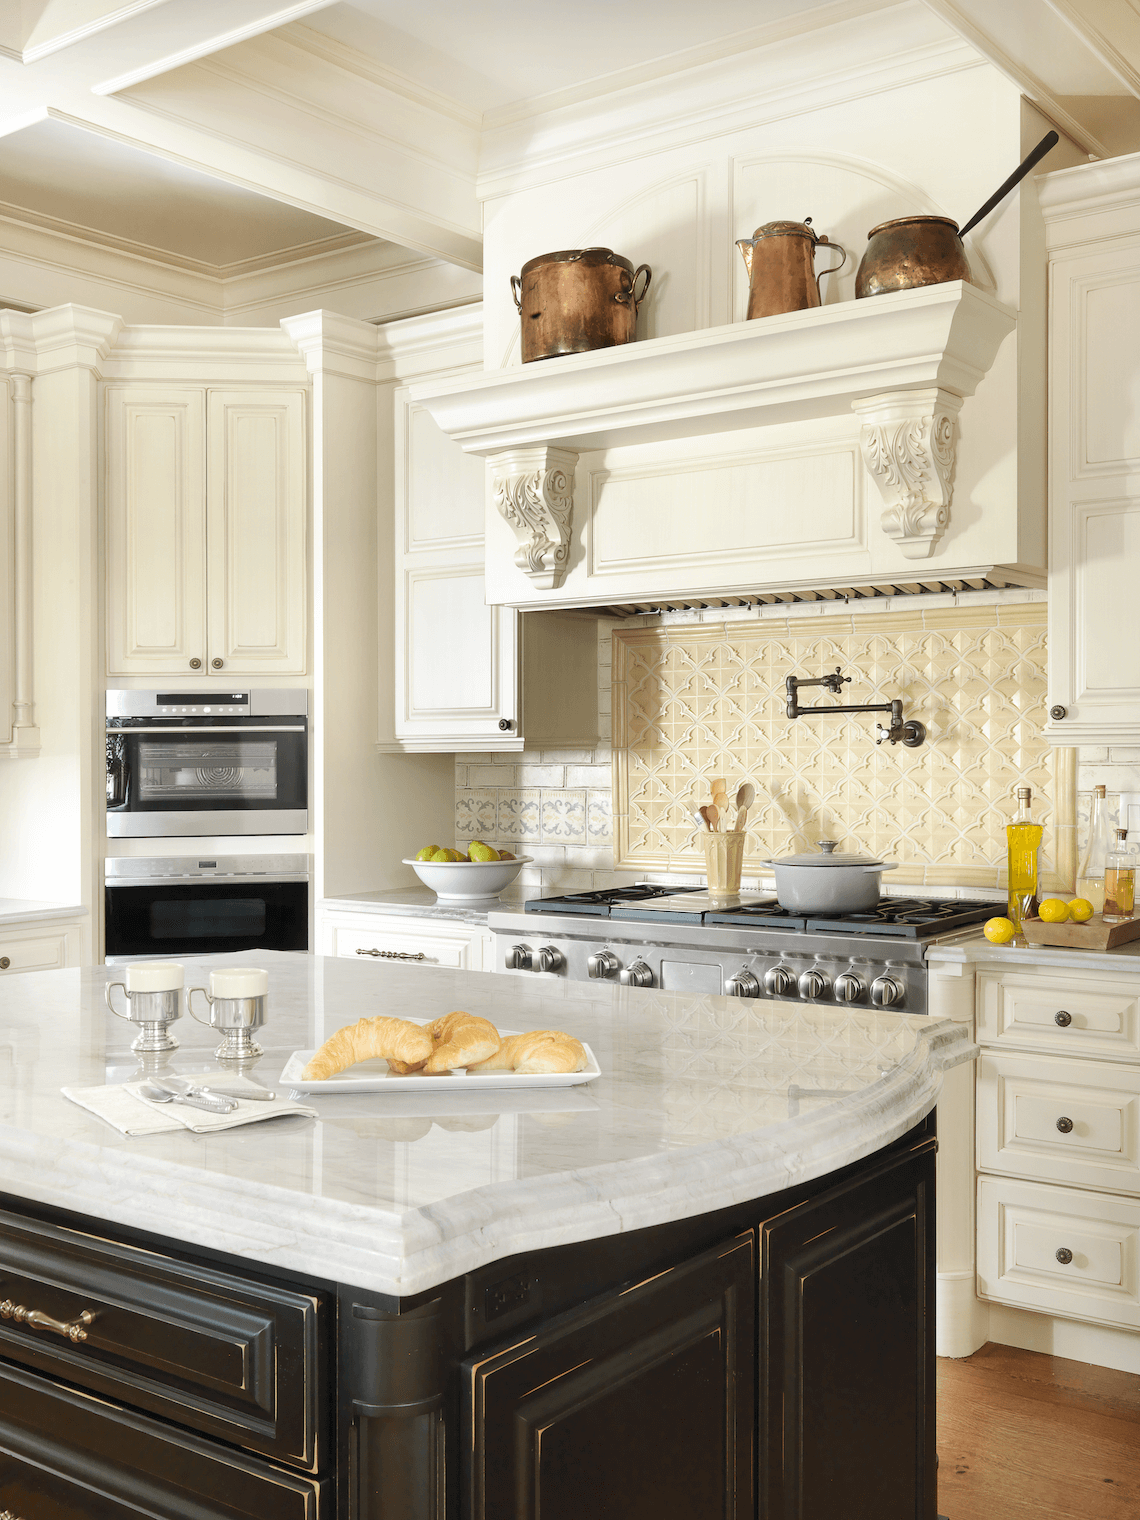 Range Hood in a Traditional Kitchen - Beck/Allen Cabinetry